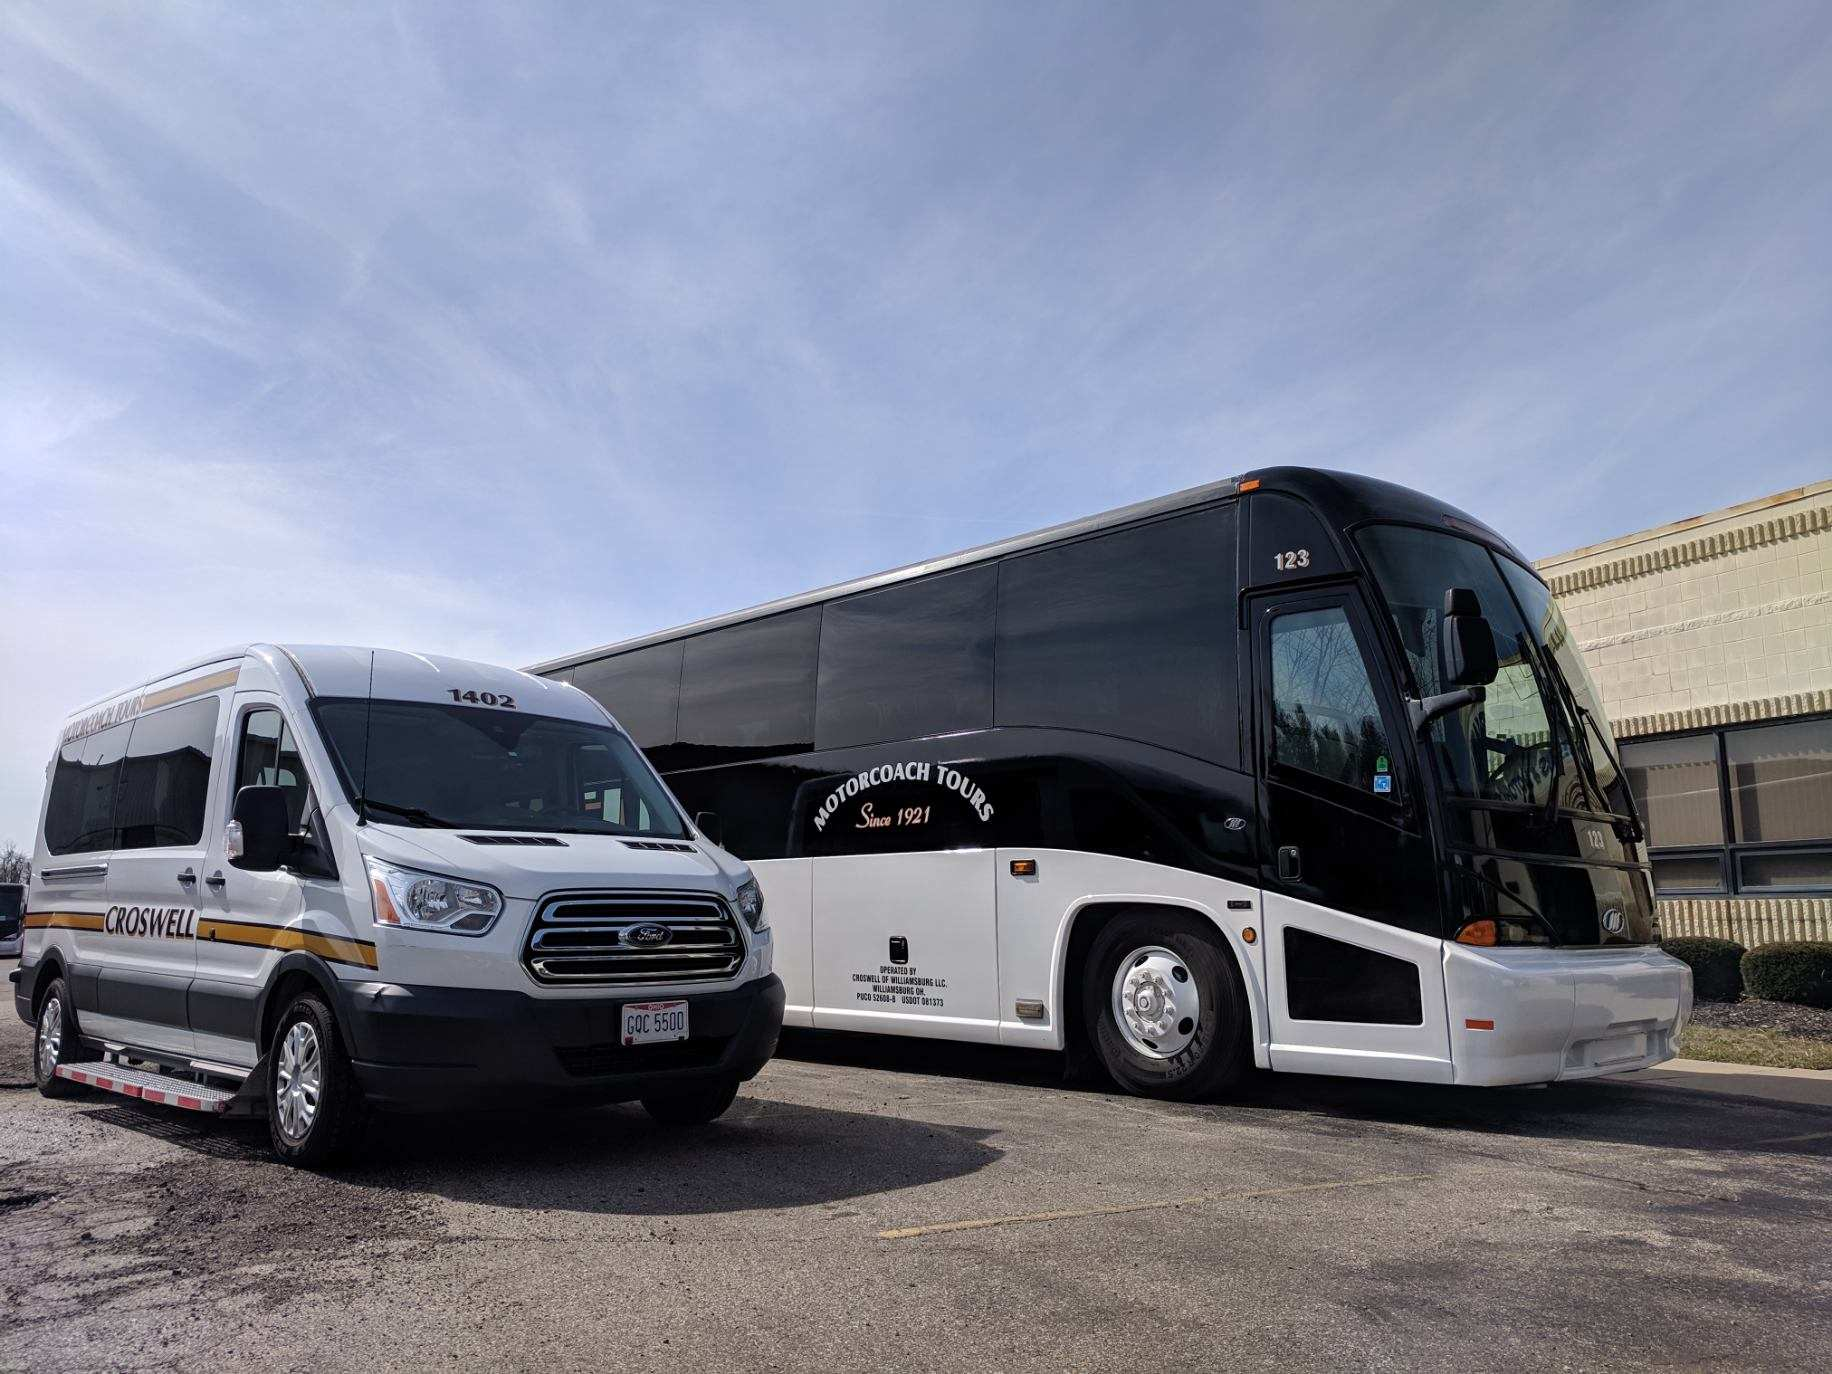 Charter Services - With our large, multi-city fleet ranging from 54 passenger tour coaches to 20 passenger shuttle buses, we will easily accommodate the needs of your group's size and budget. Travel in comfort and safety in our Deluxe VIP Motorcoaches. Find out more ➝